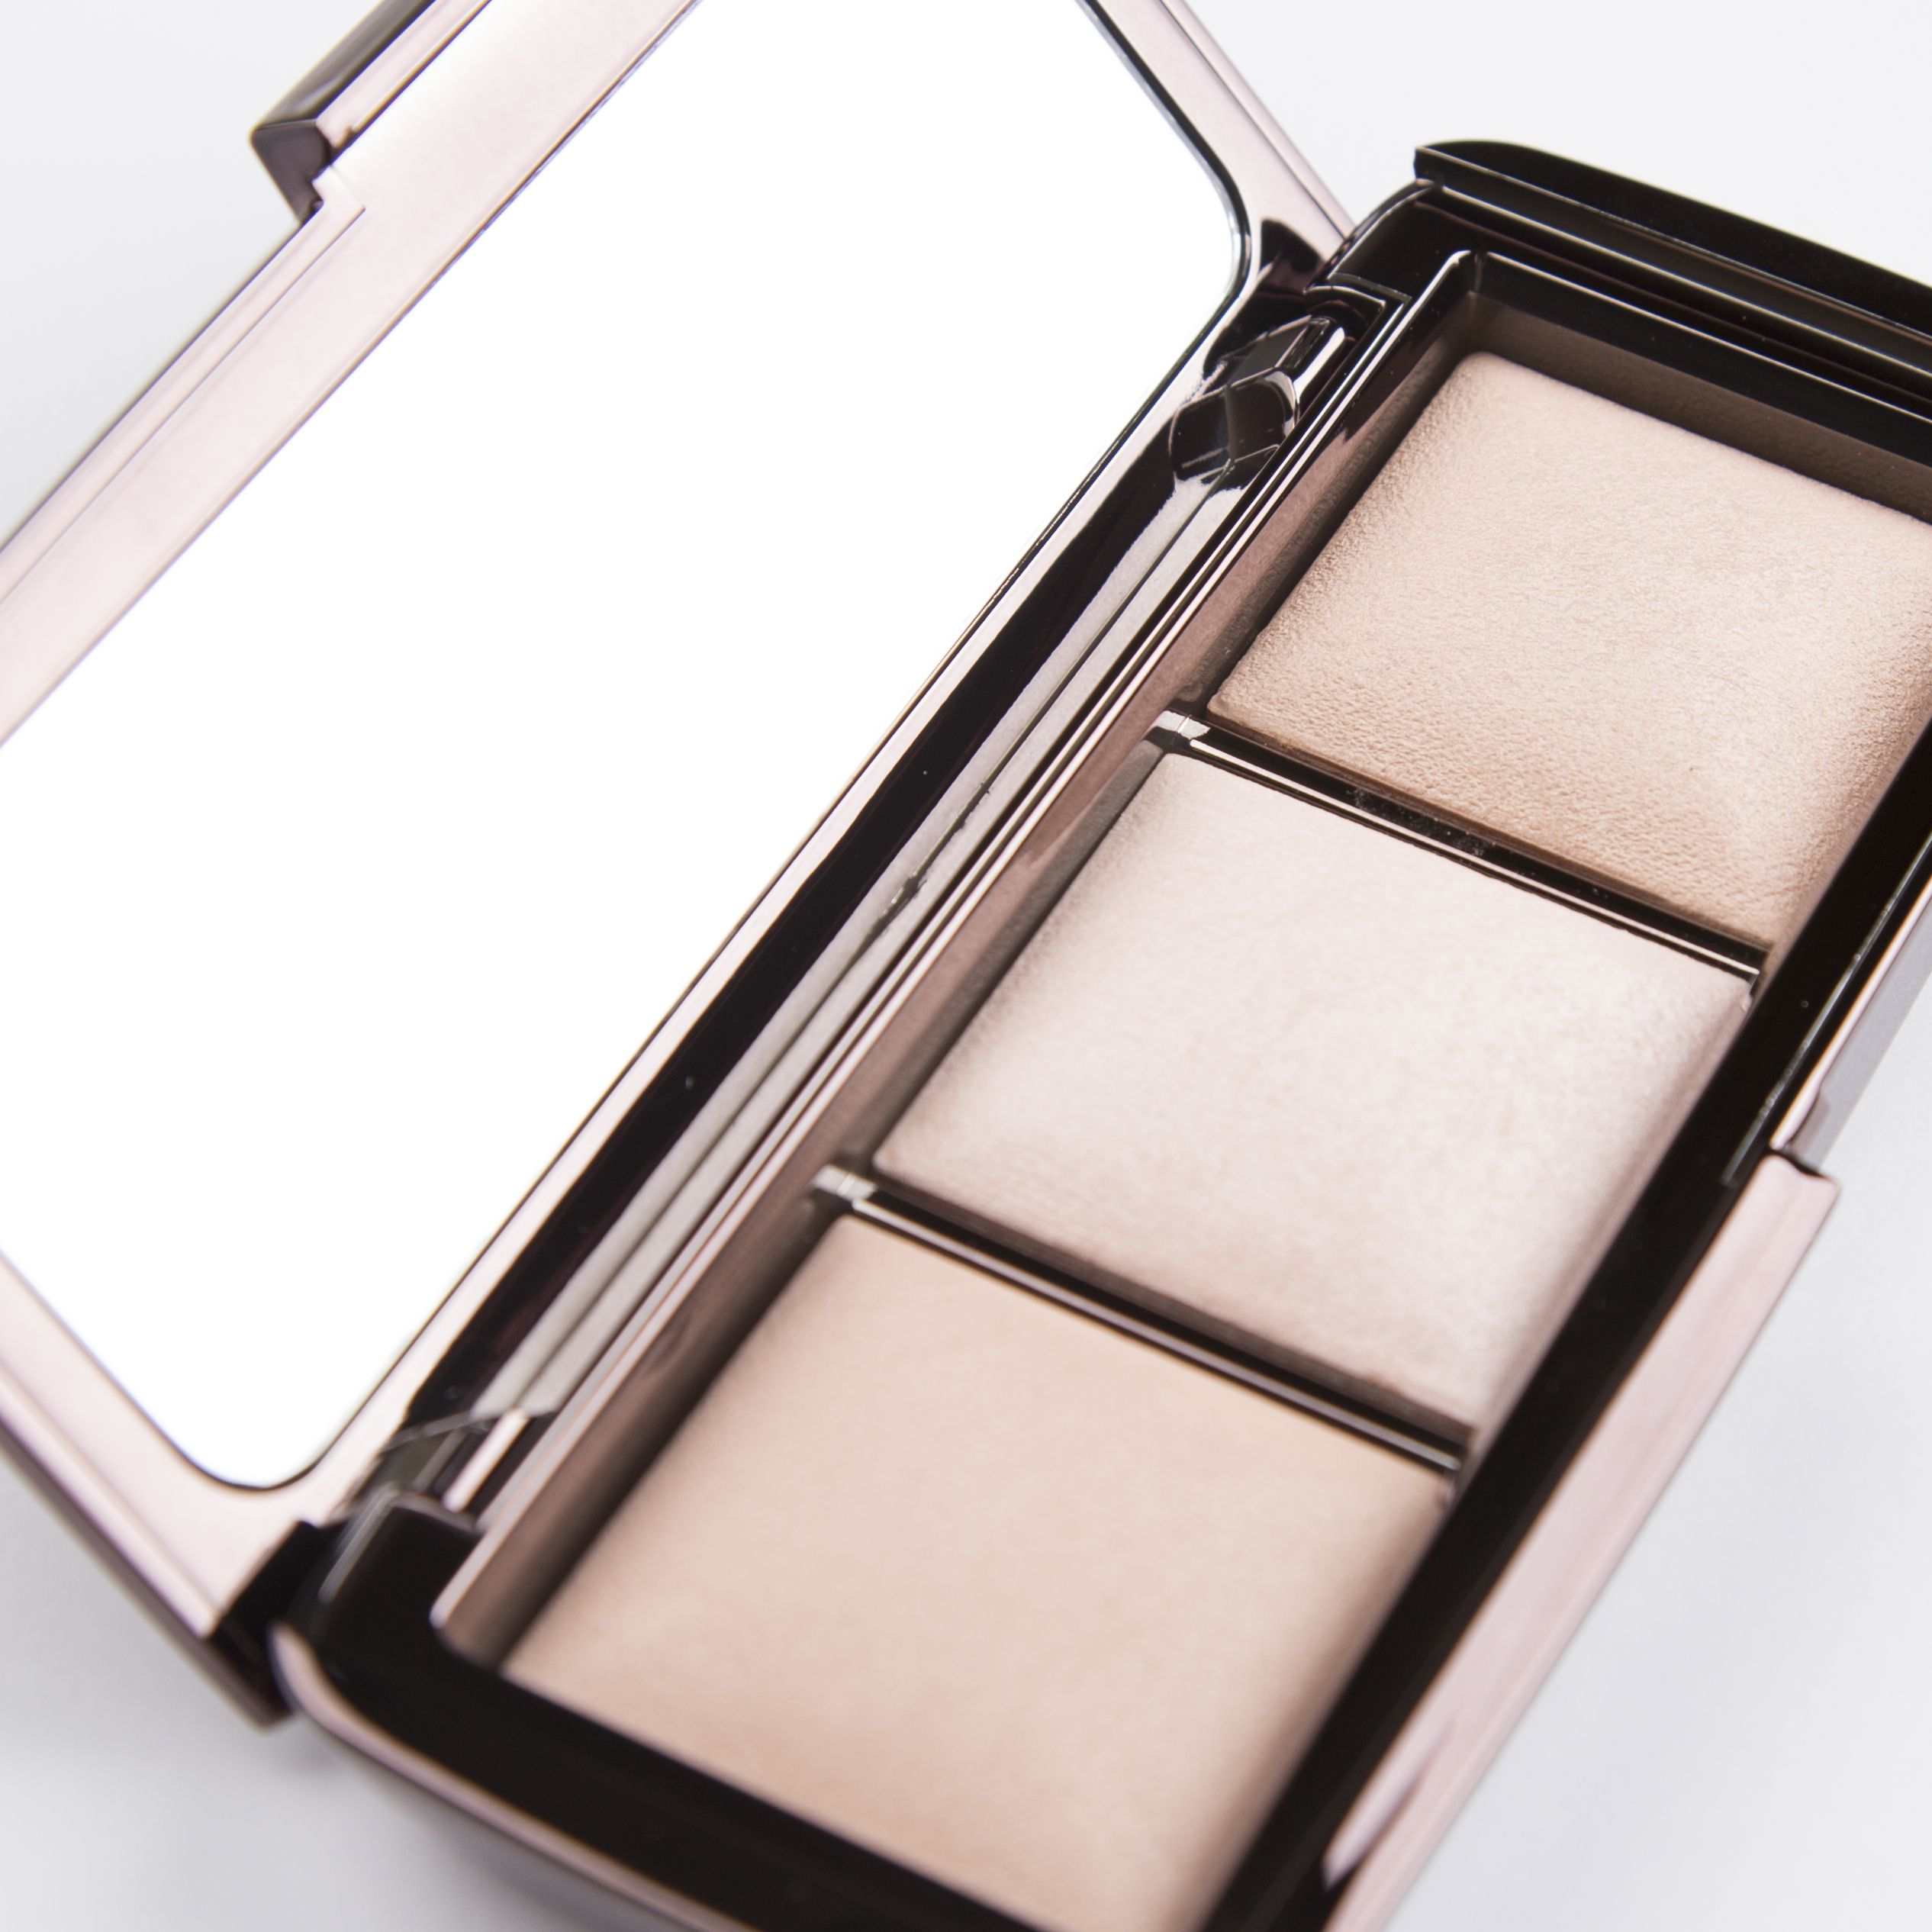 HOURGLASS Ambient® Lighting Palette Hourglass makeup